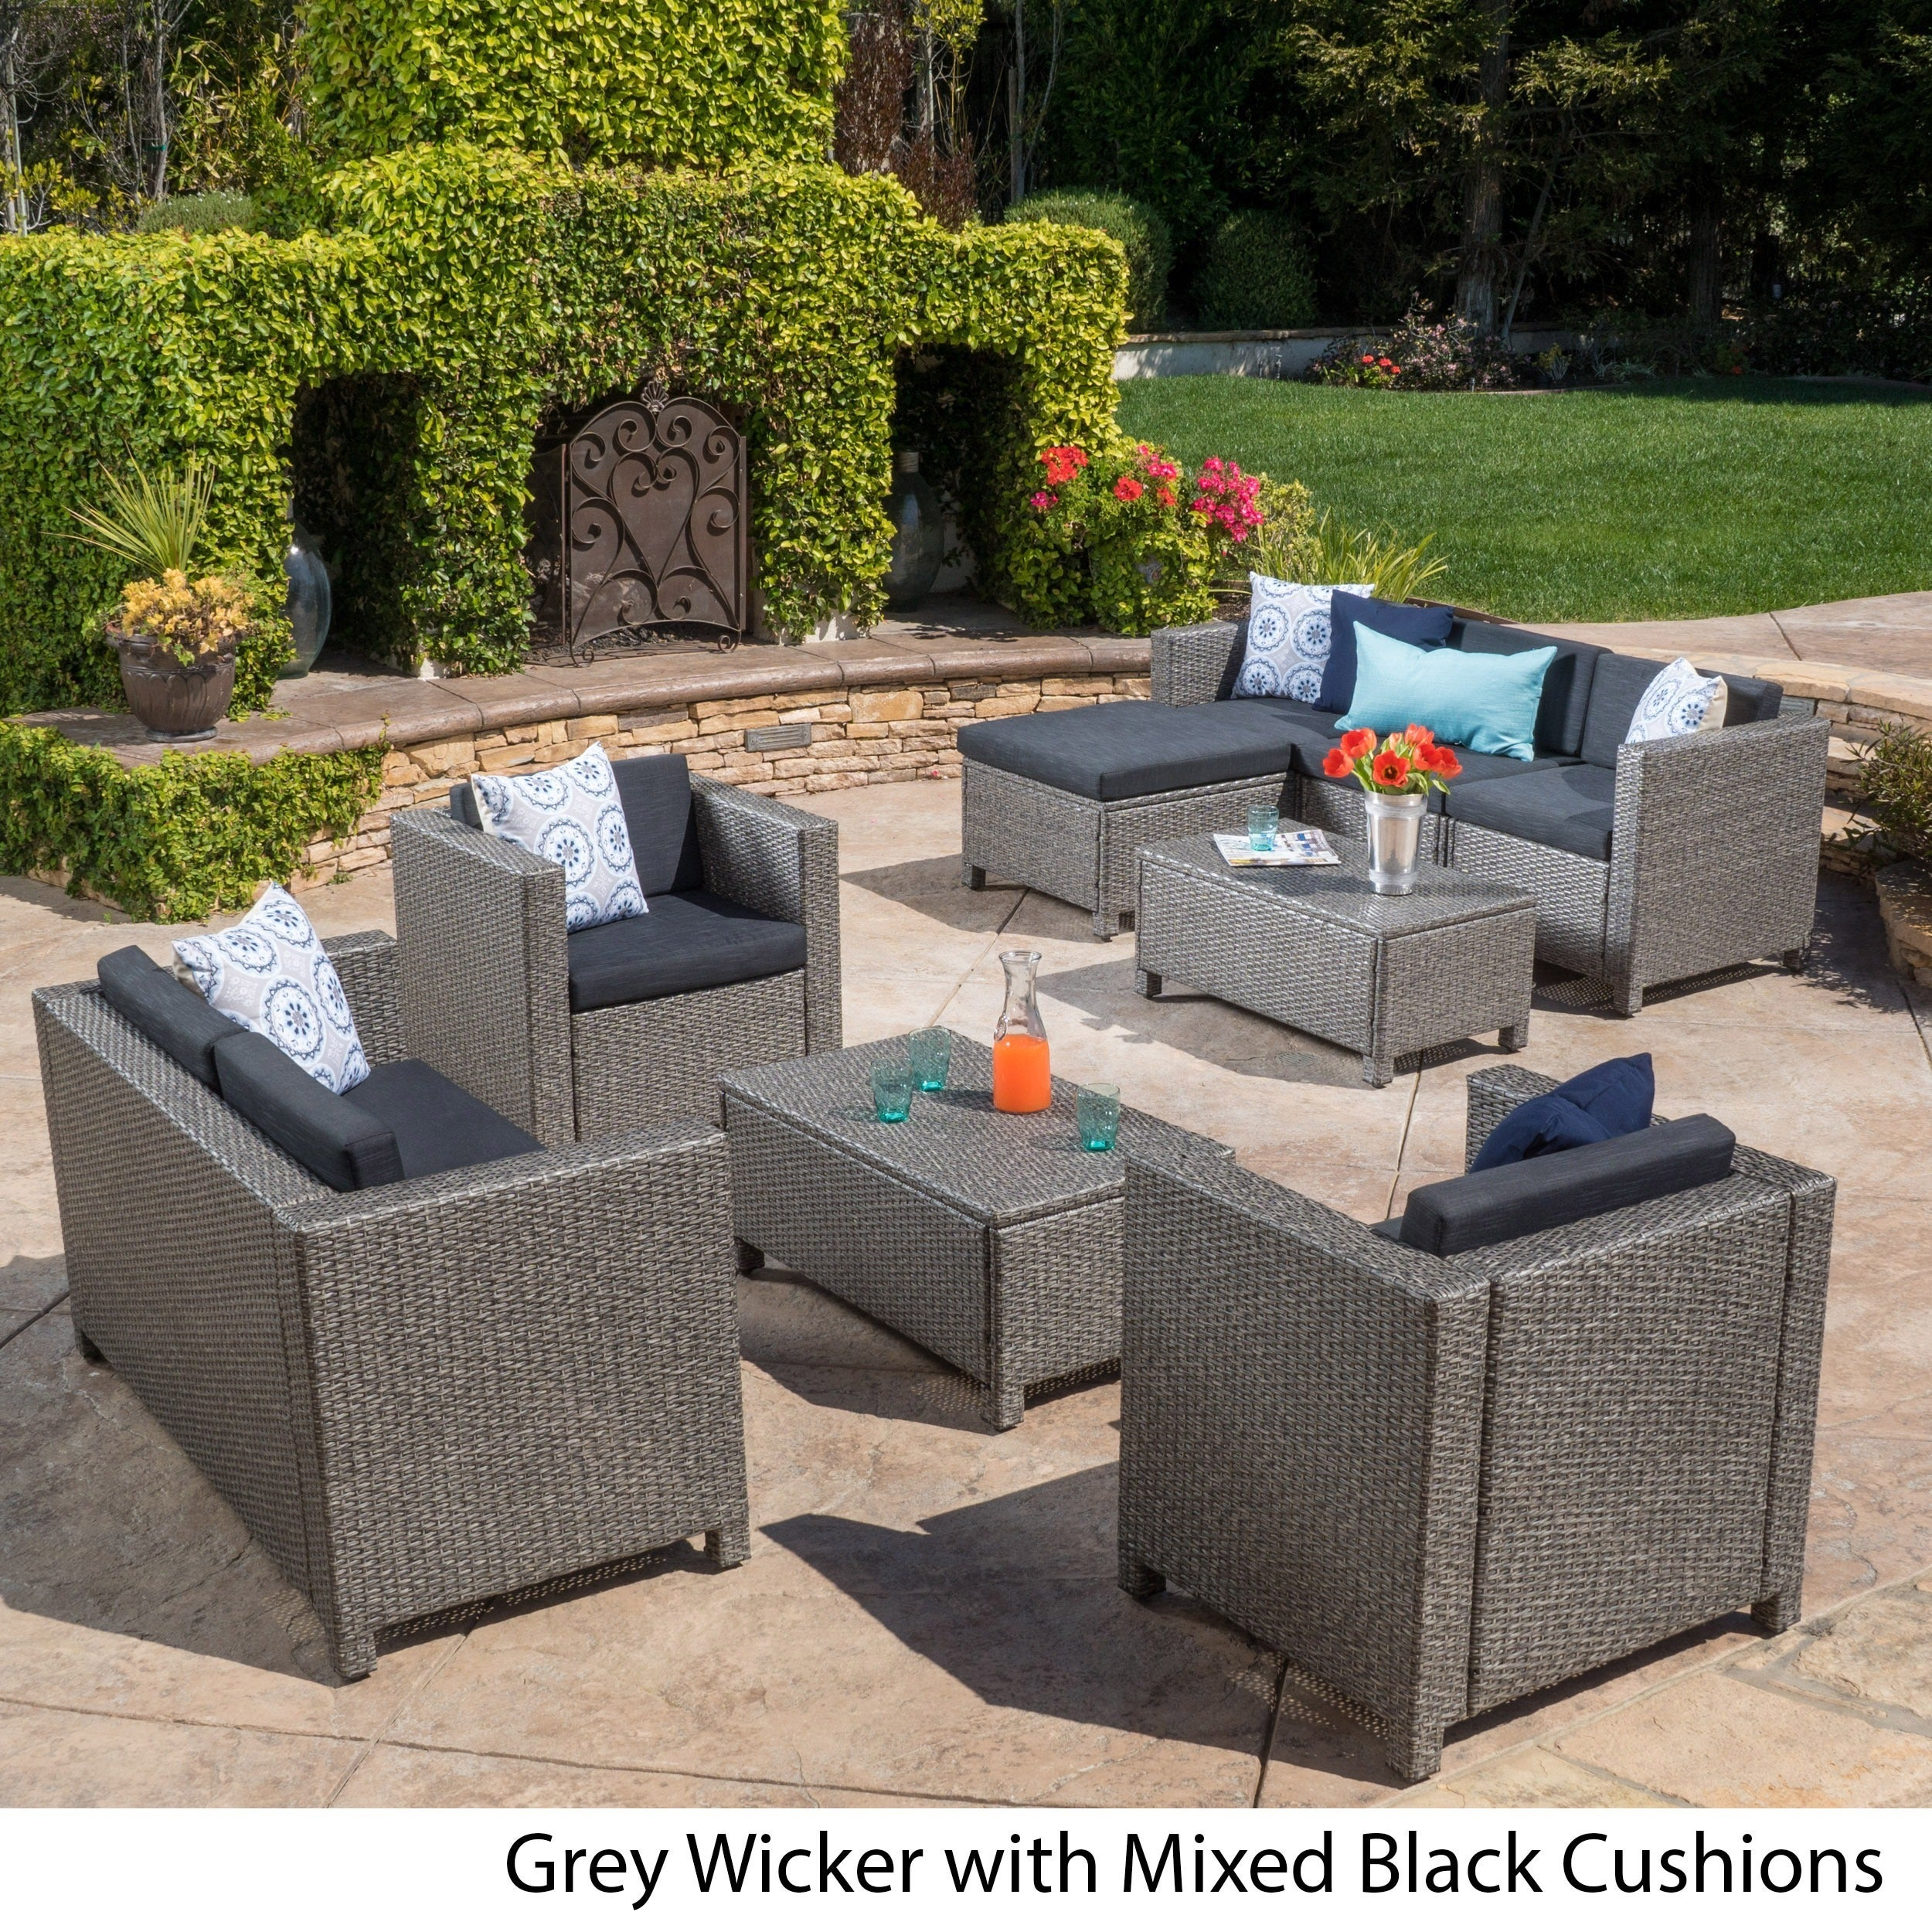 Shop Puerta Outdoor 9 Piece Wicker Sectional Sofa Set With Cushions